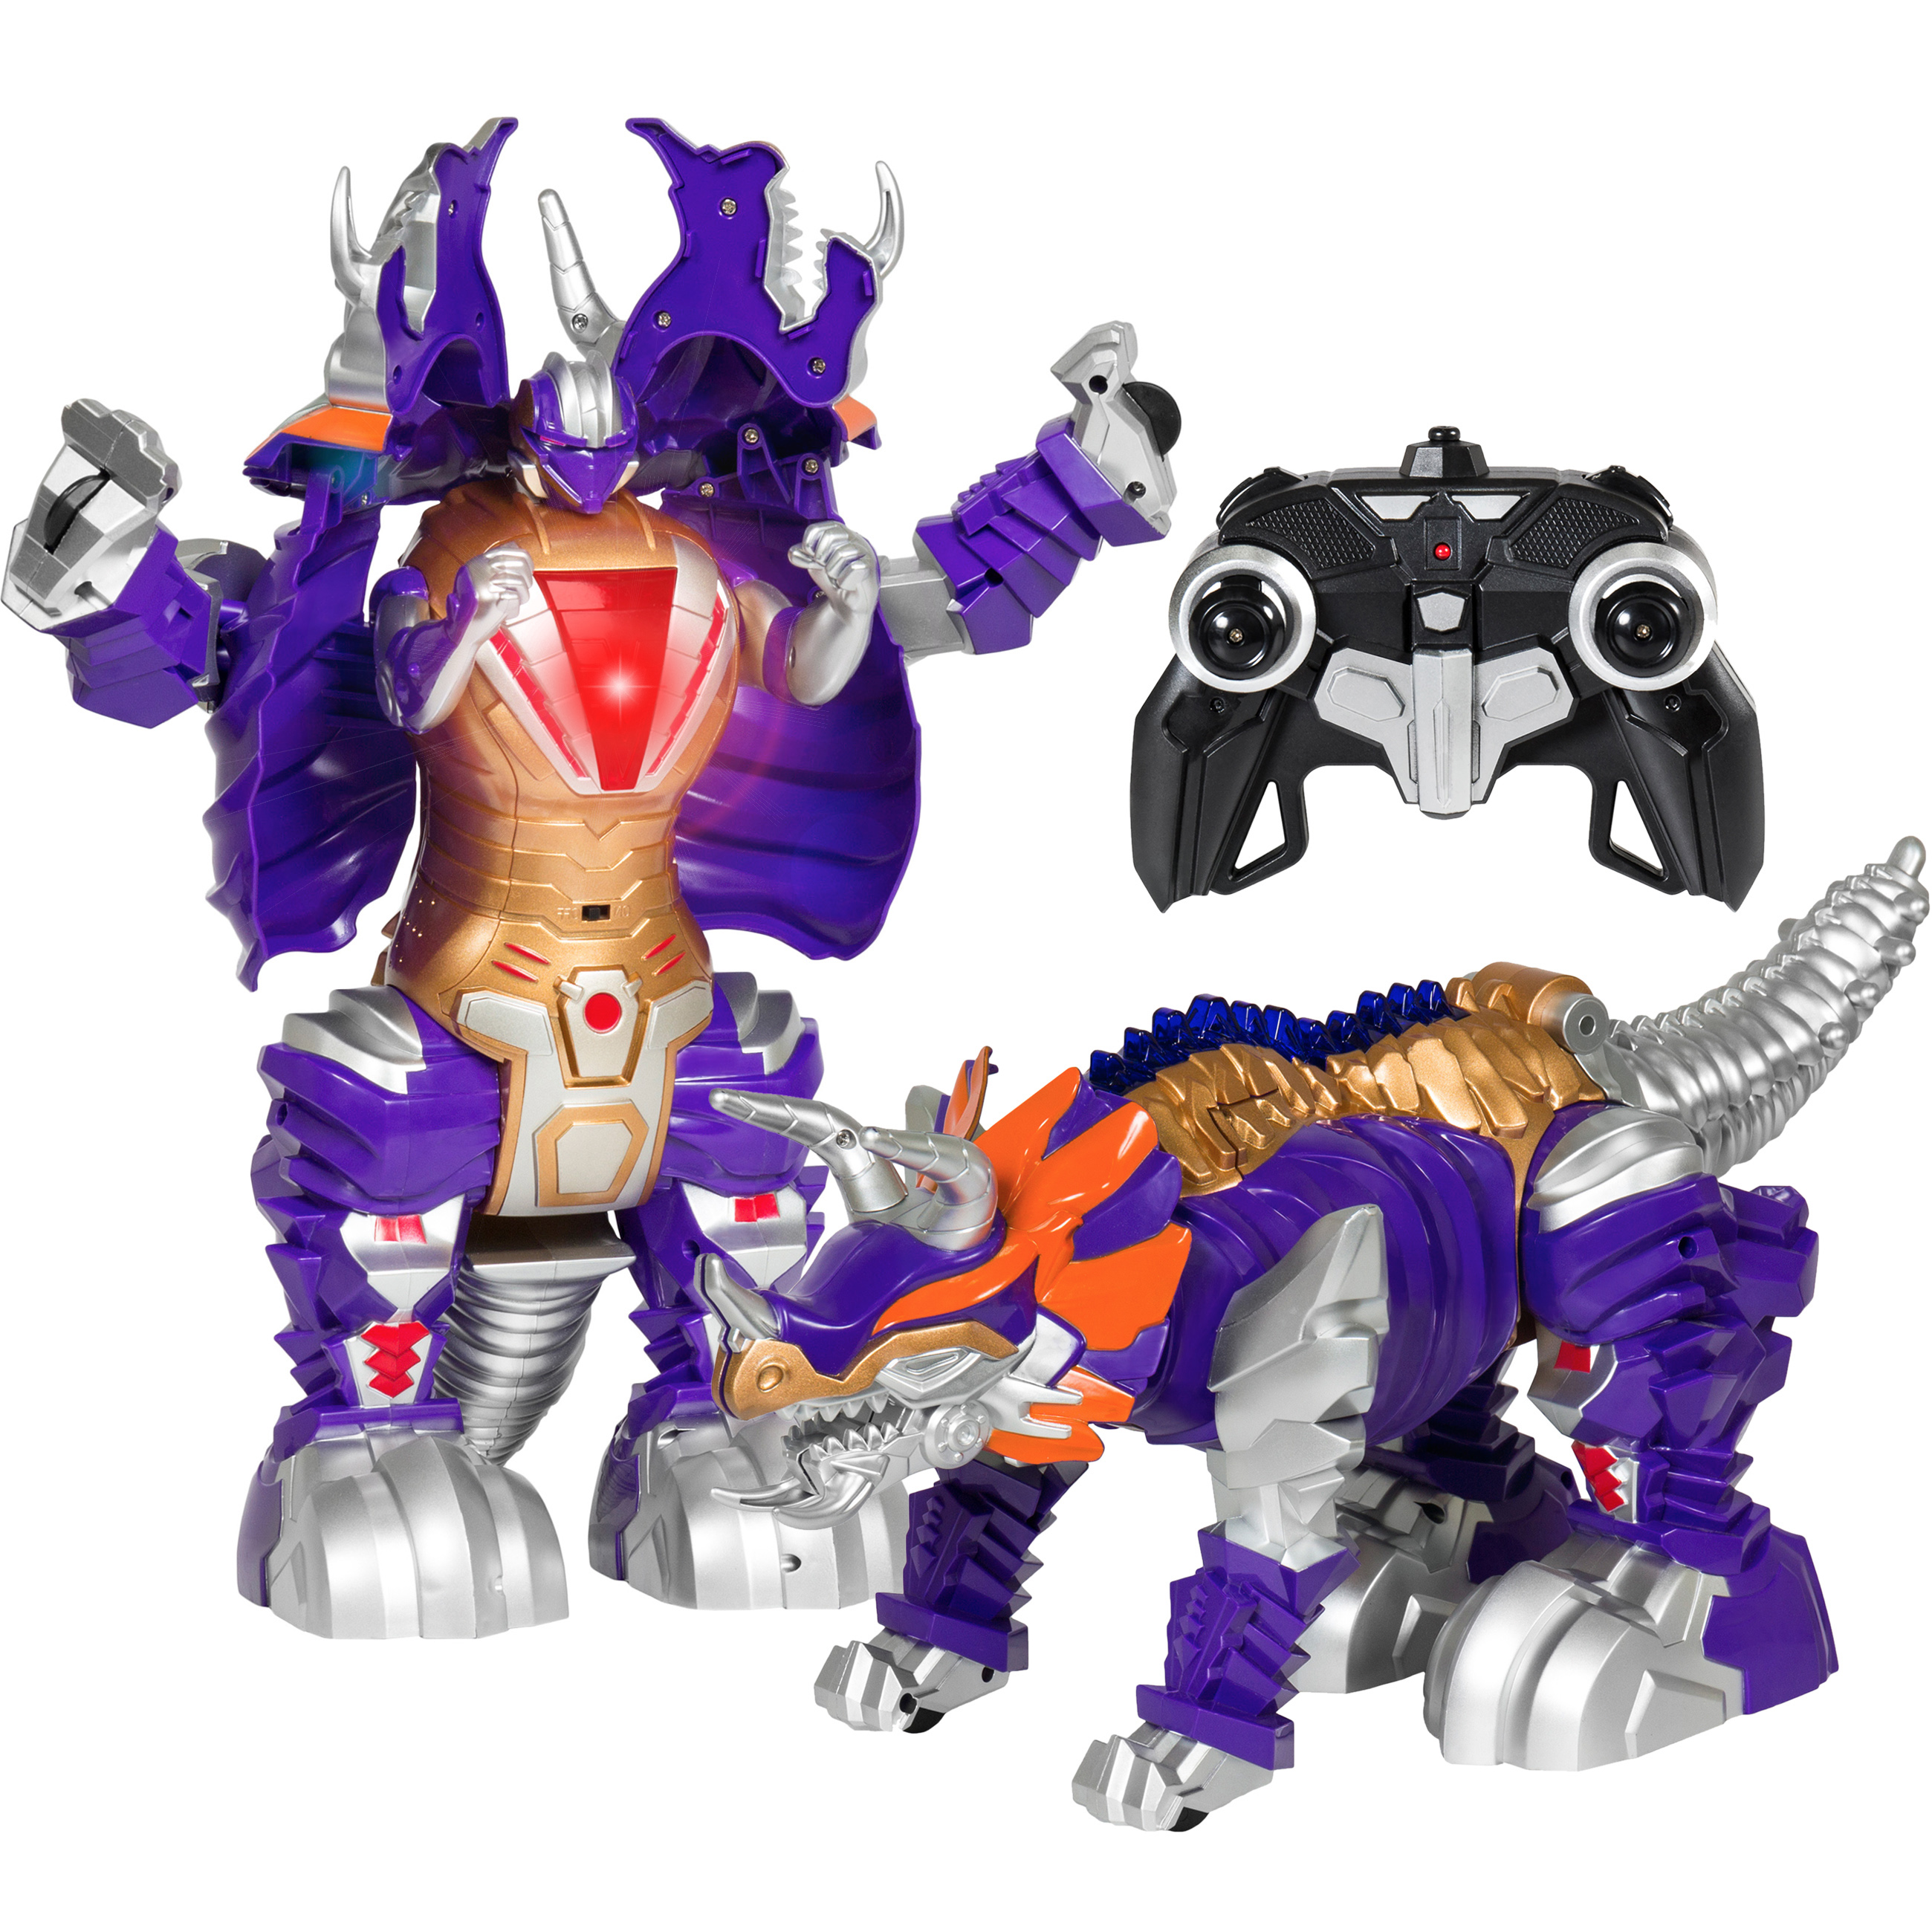 Best Choice Products Kids Transformer Remote Control Robot Dinosaur Car w/ USB Charger, Lights, and Sounds -Purple/Gold